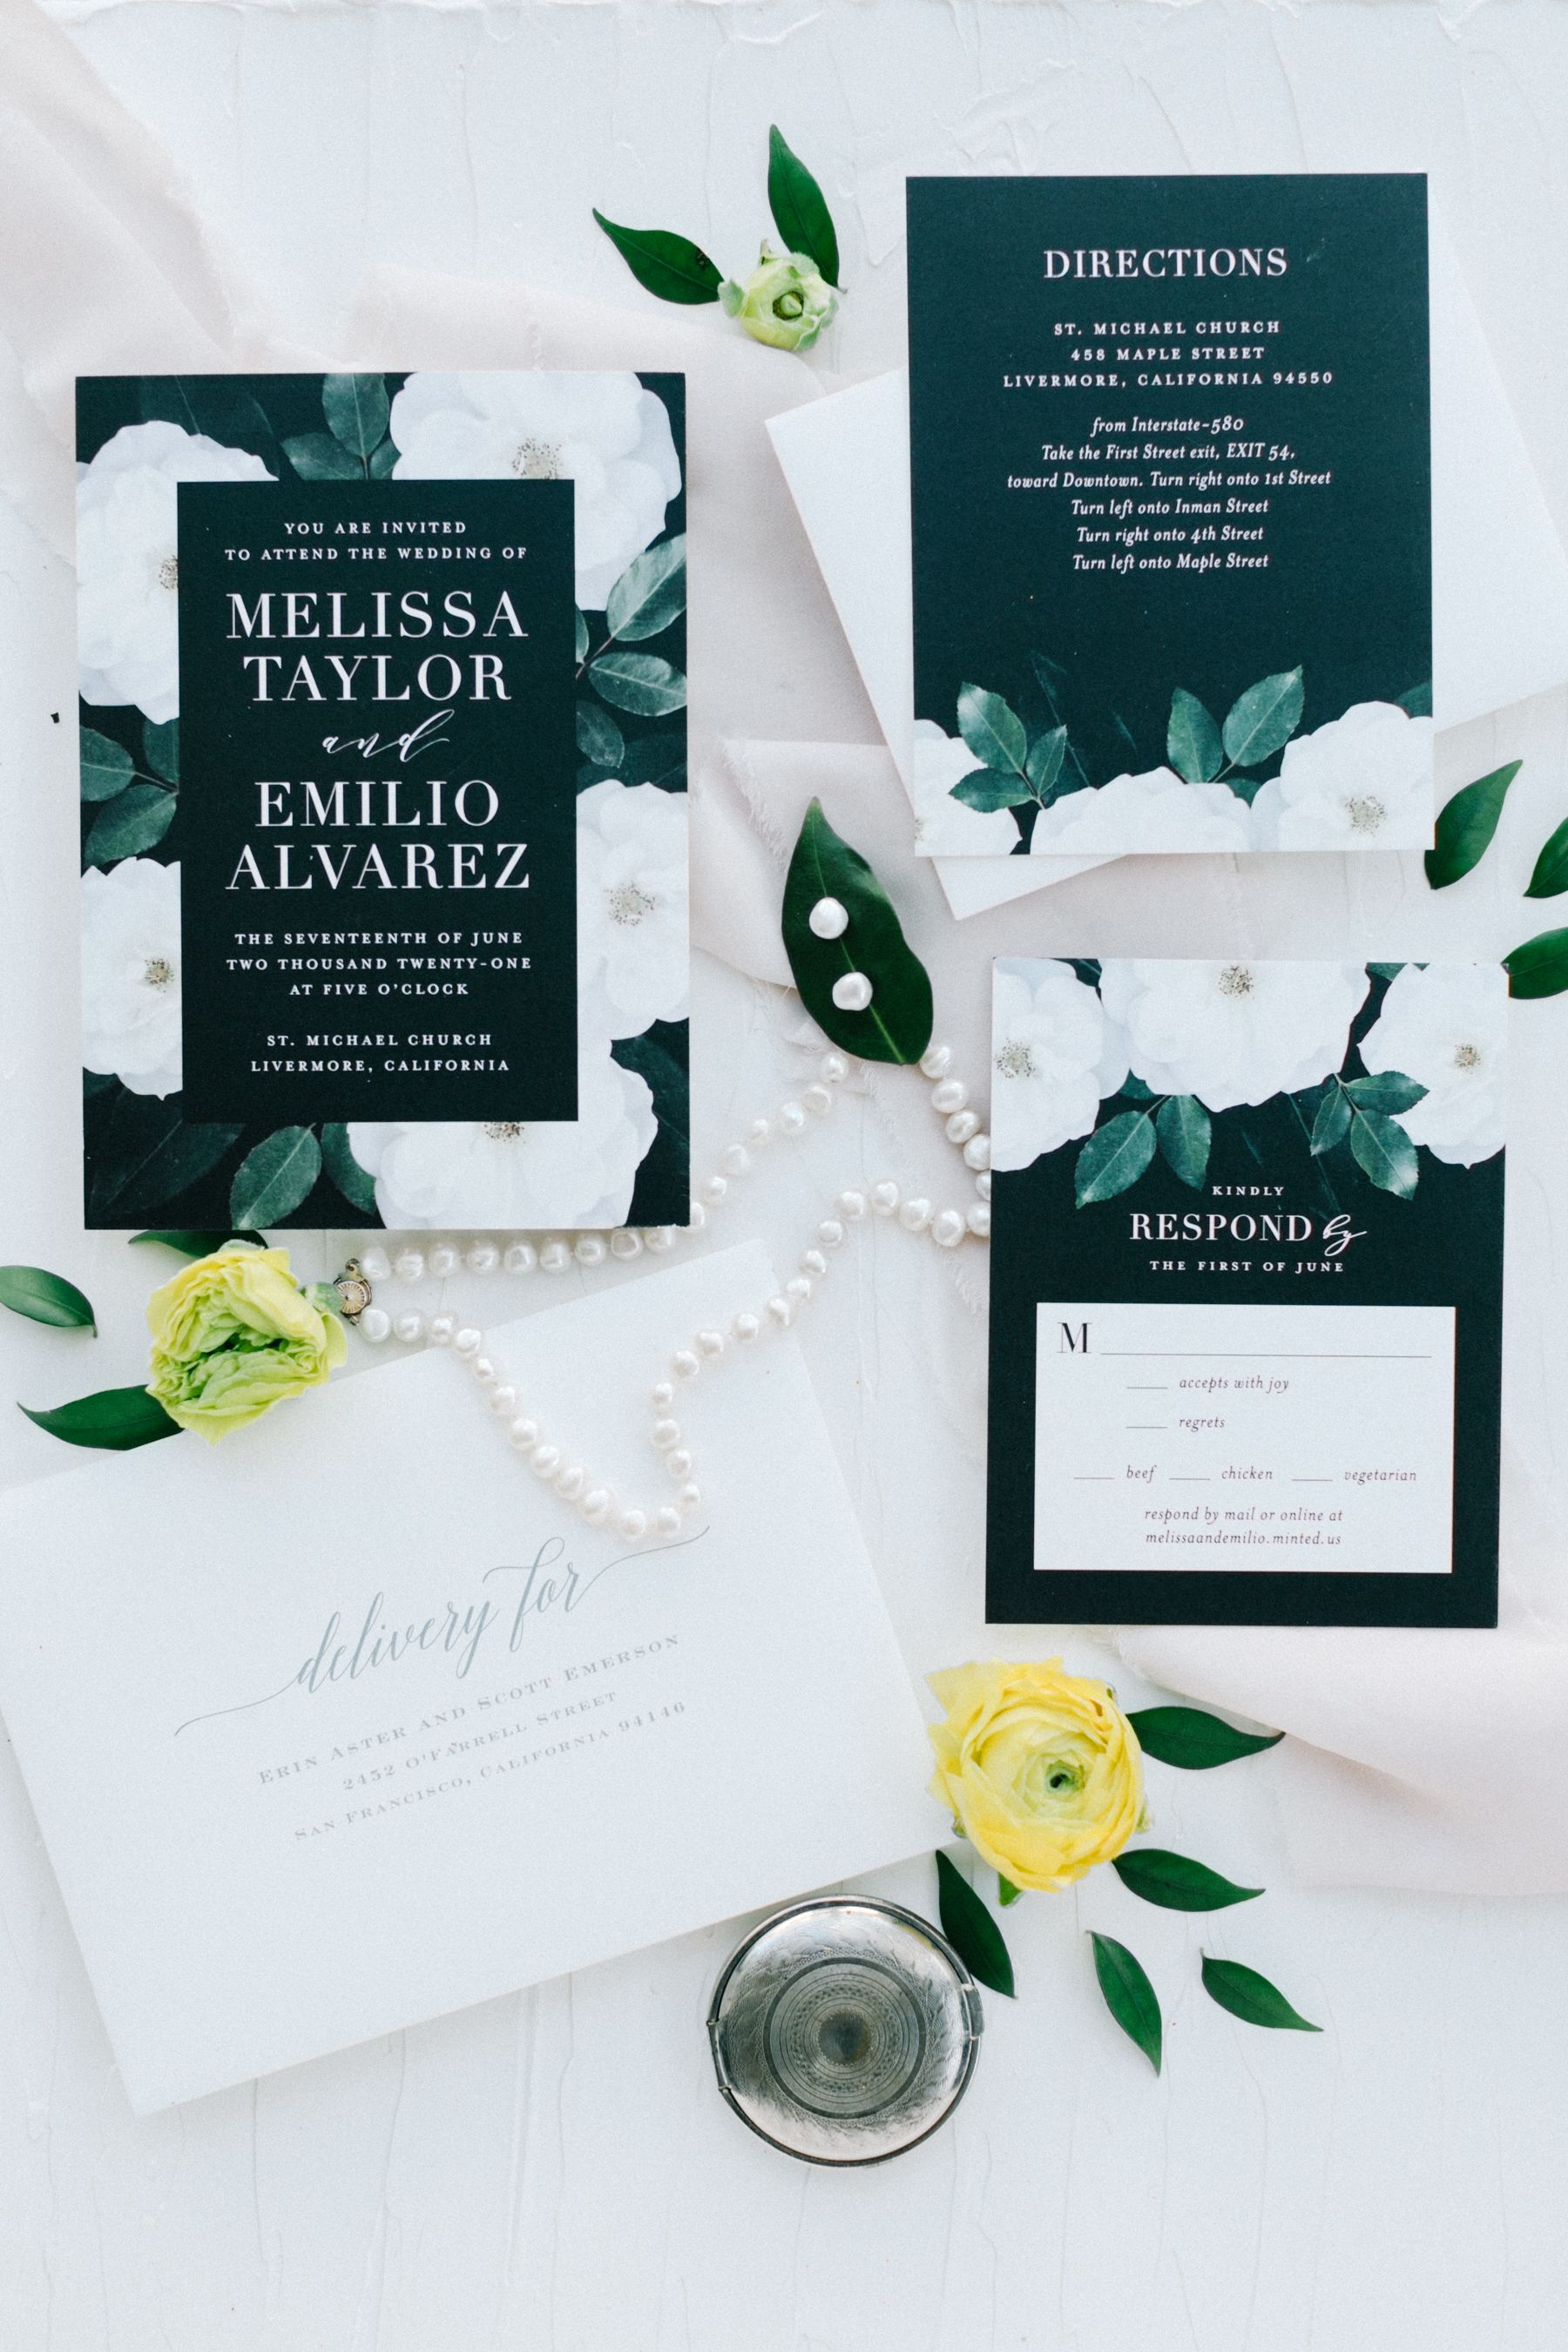 Modern Black And White Minted Wedding Invitation Suite Styling Minted Wedding Invitations Wedding Invitations Invitation Suite Styling